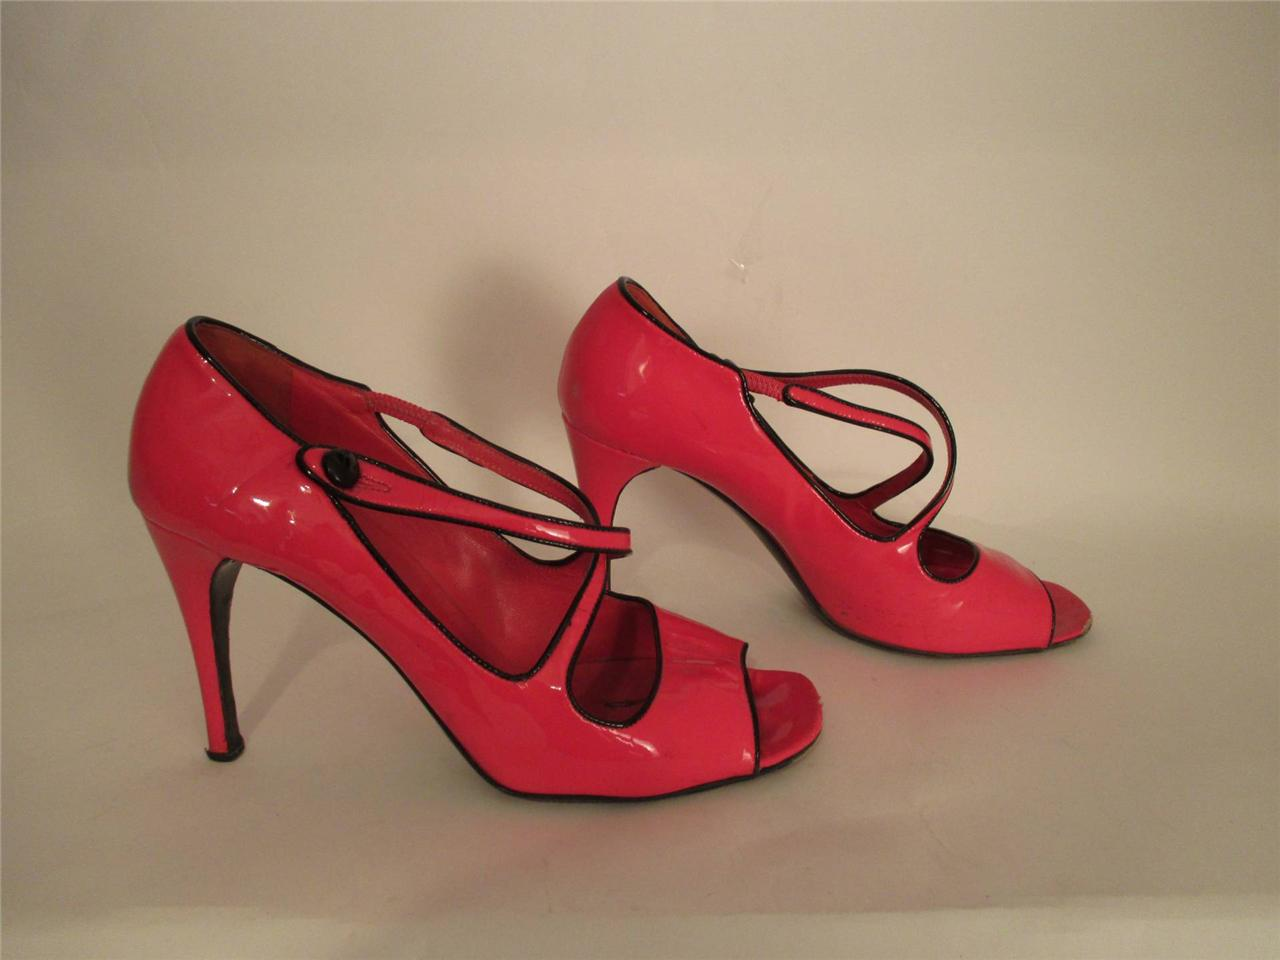 Prada-Bright-Pink-Patent-Leather-Open-Toe-Mary-Janes-SZ-37-5